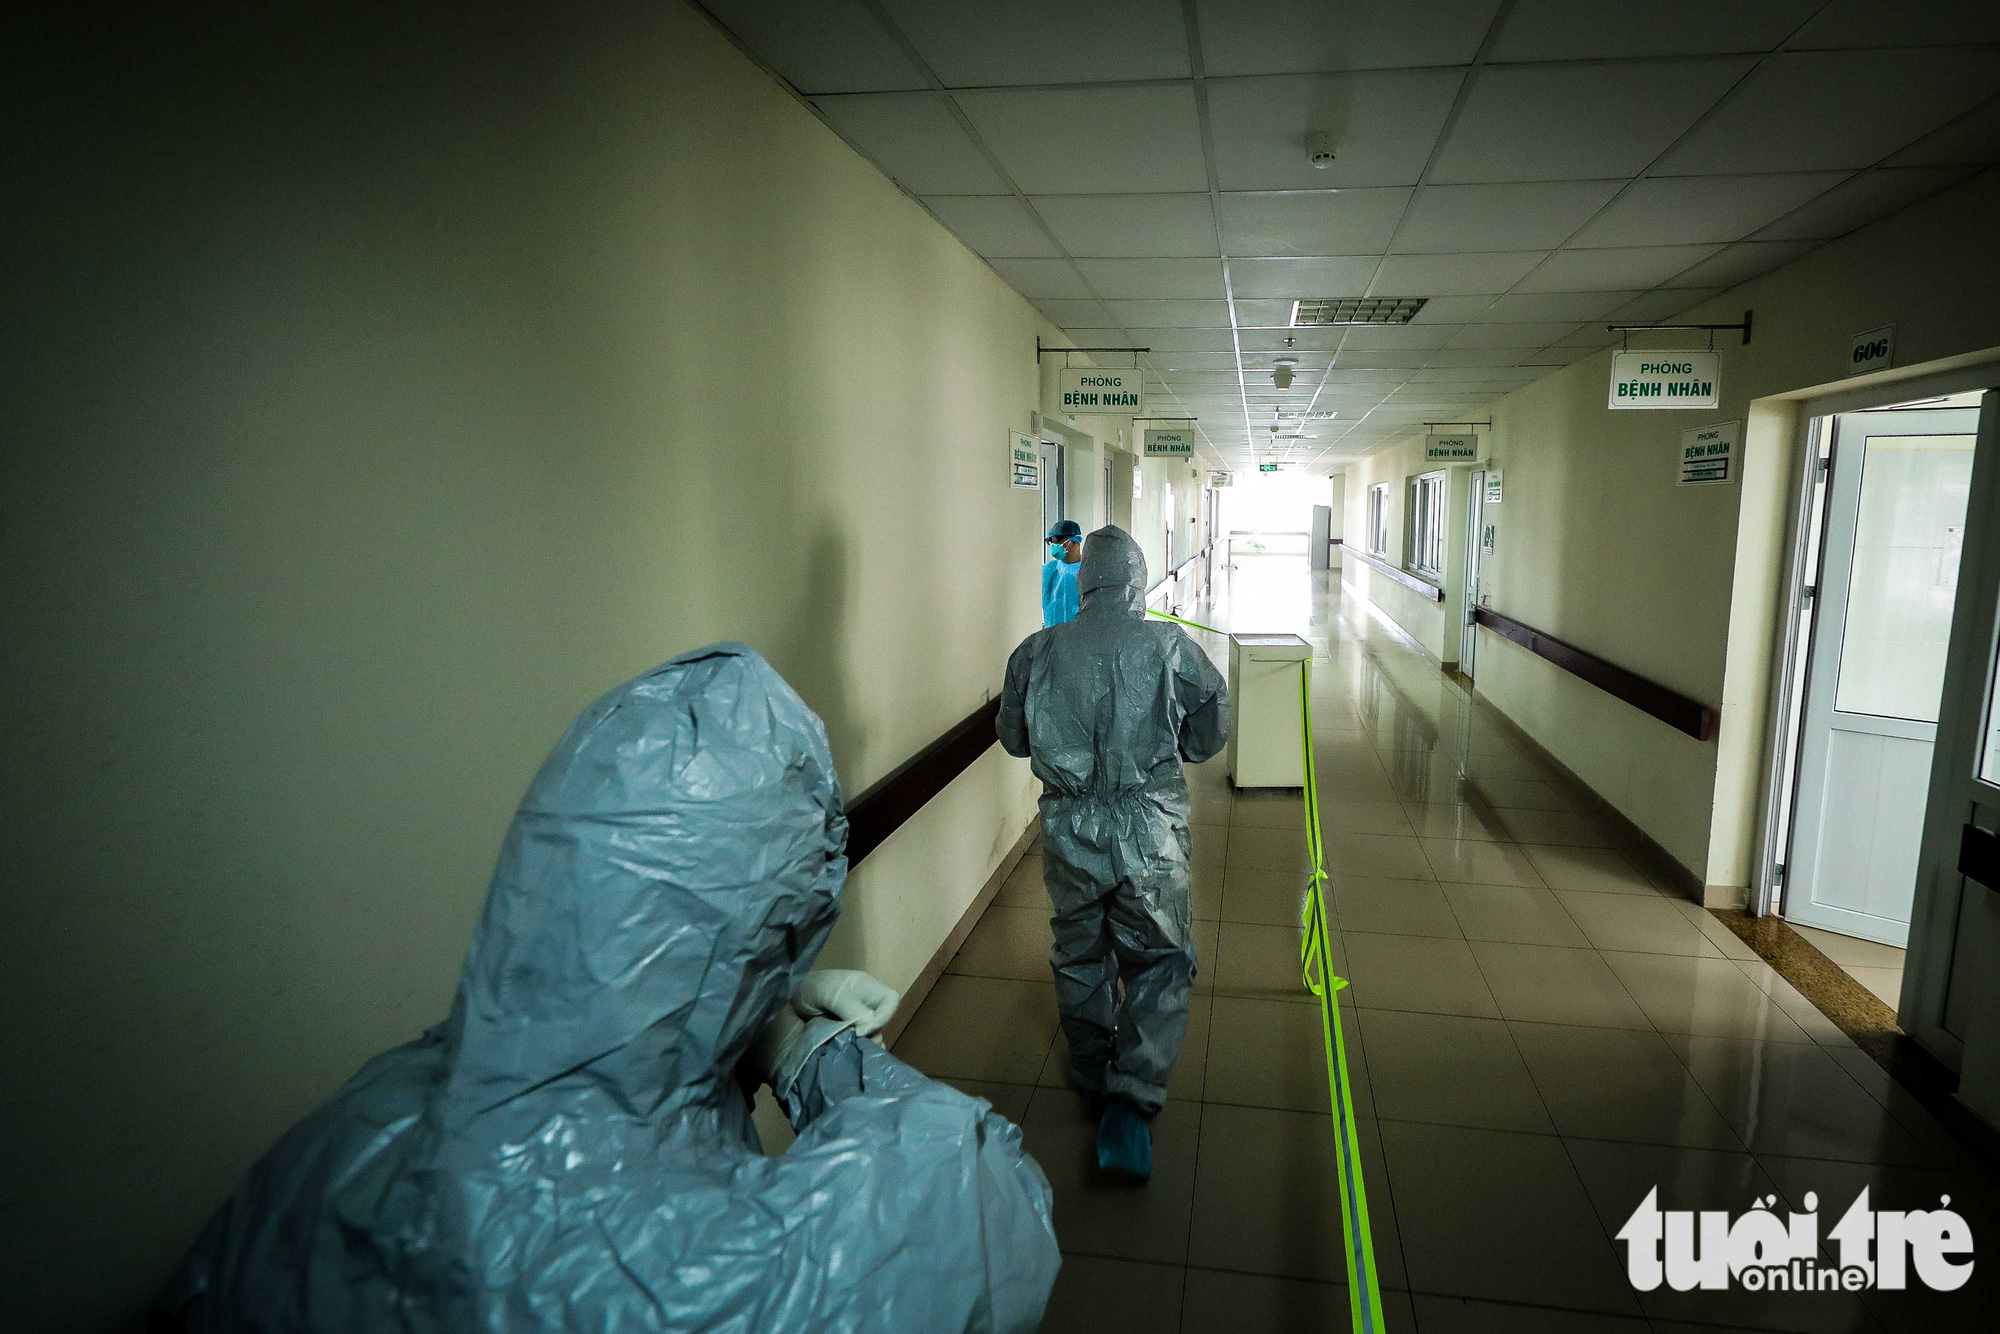 Doctors wear protective suits while treating COVID-19 patients at the National Hospital for Tropical Diseases in Dong Anh District in Hanoi, Vietnam. Photo: Nguyen Khanh / Tuoi Tre